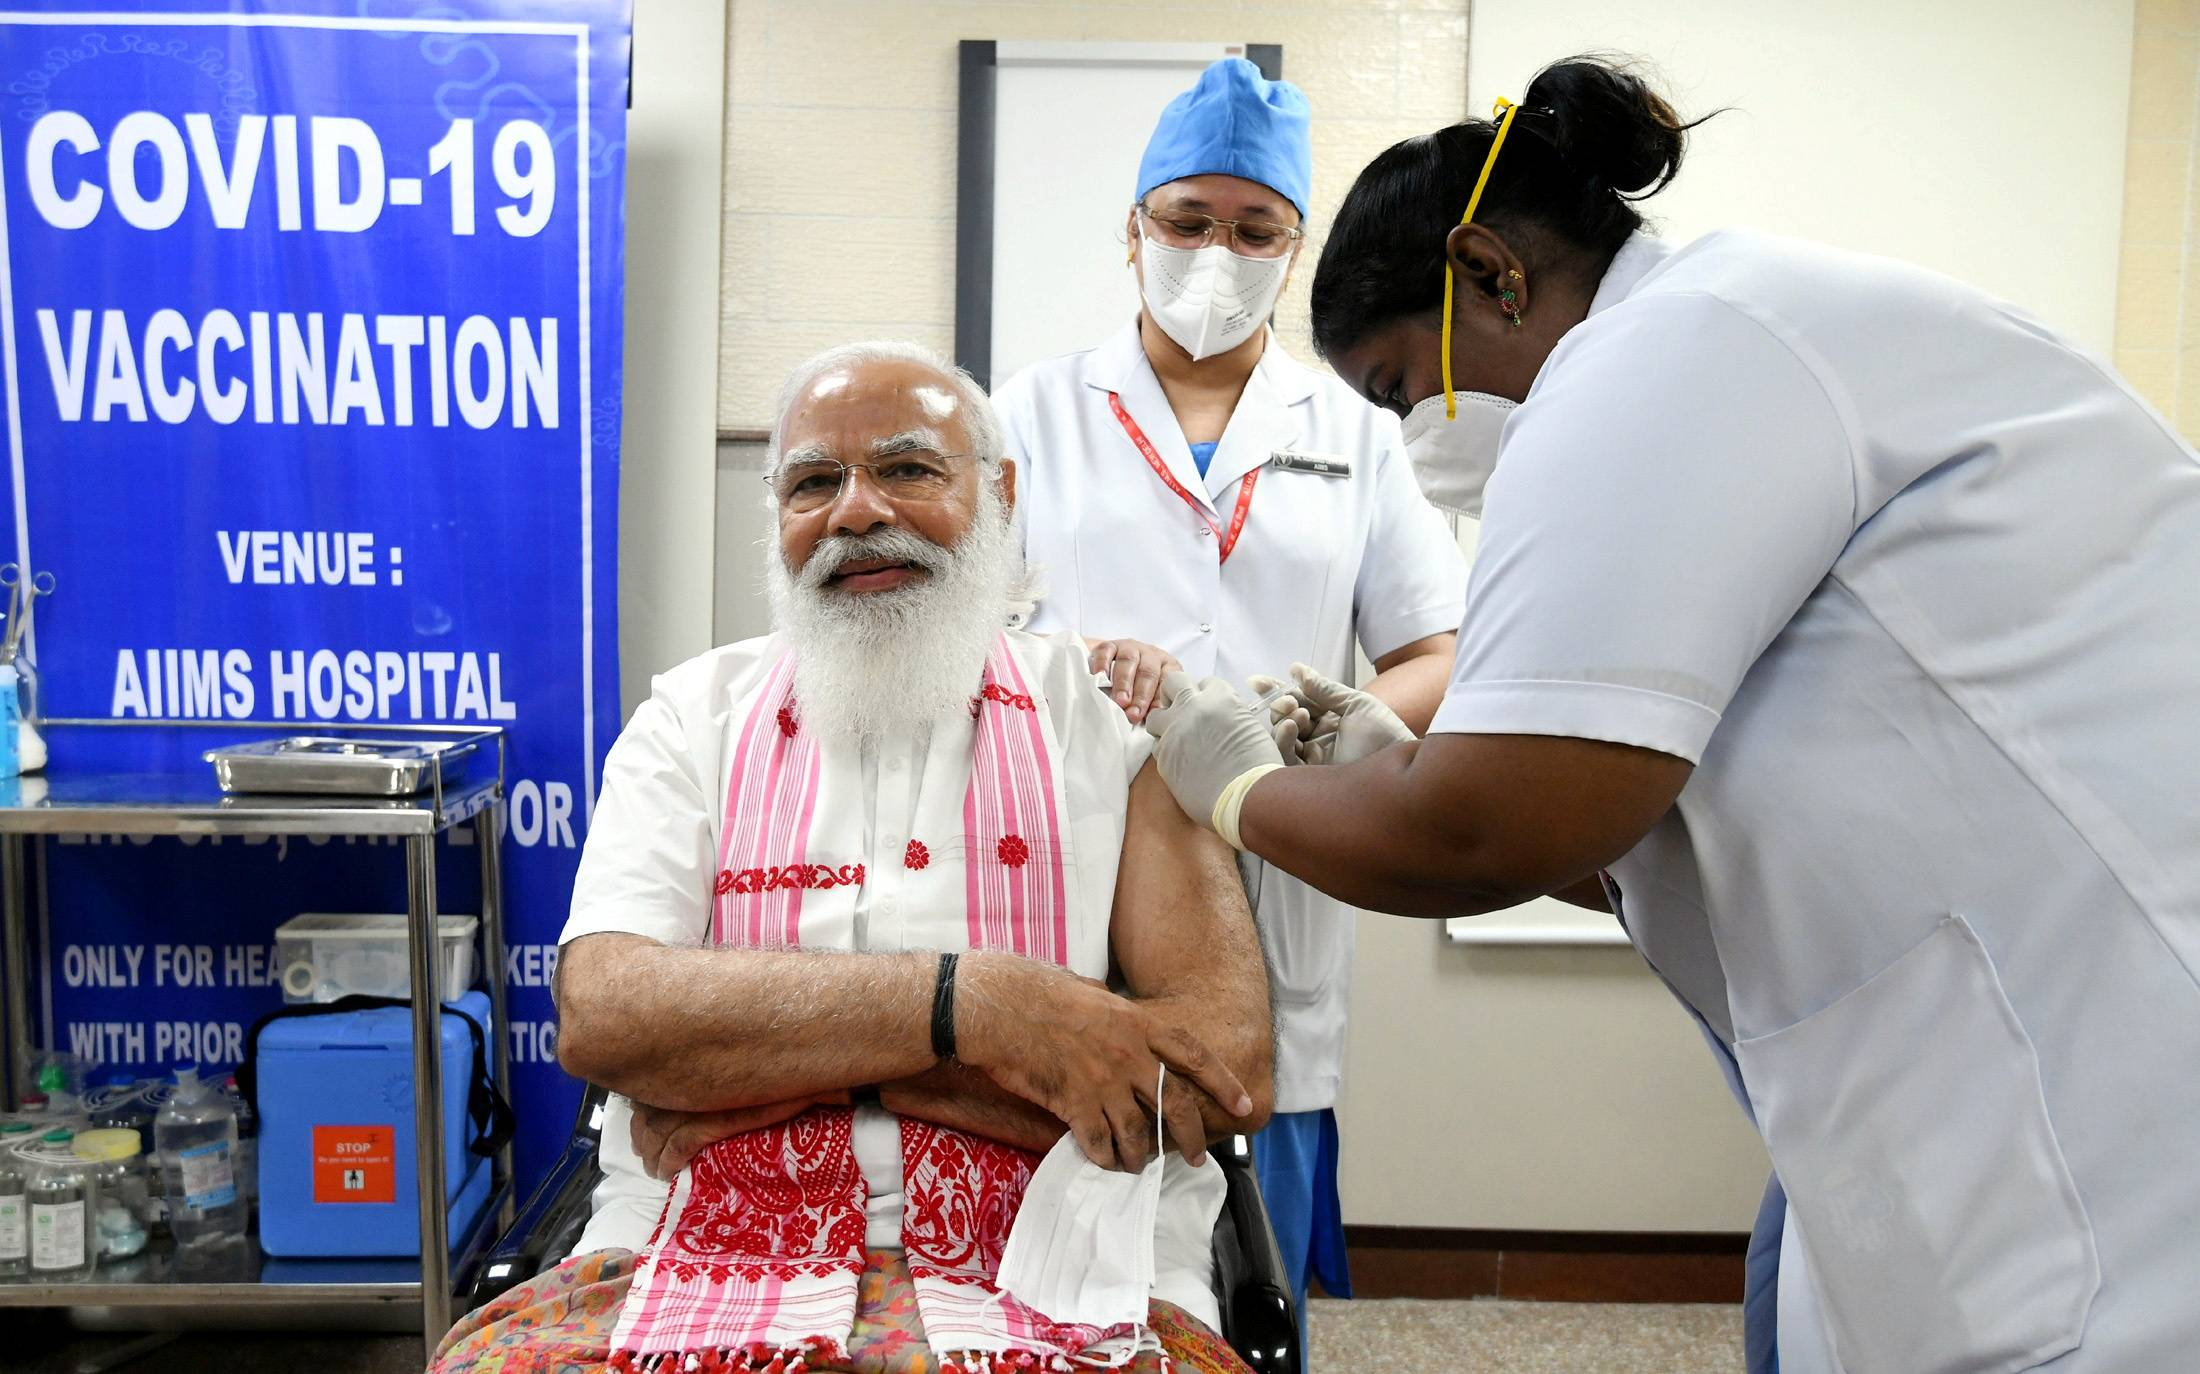 Indian Prime Minister Narendra Modi receives a dose of Covaxin, a COVID-19 vaccine developed by India's Bharat Biotech and the state-run Indian Council of Medical Research, at a hospital in New Delhi on Monday.   INDIA'S PRESS INFORMATION BUREAU / VIA REUTERS